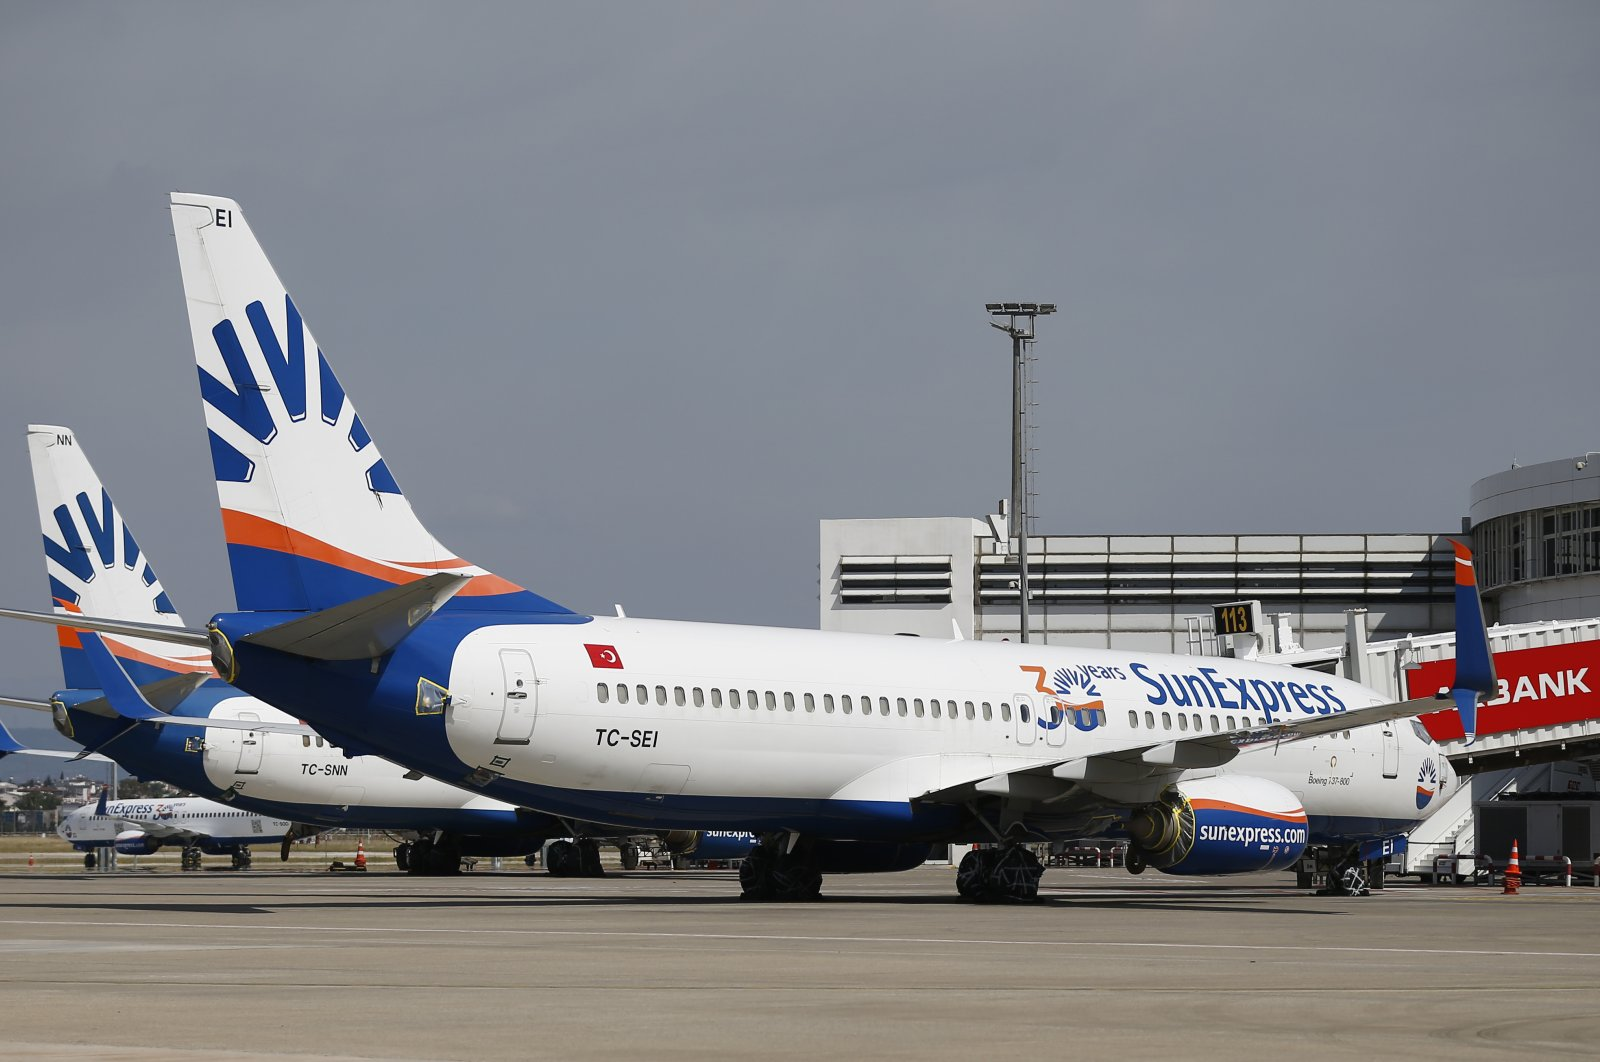 In this file photo, SunExpress planes sit parked at the gate of the Antalya Airport in Antalya, Turkey. (AA Photo)